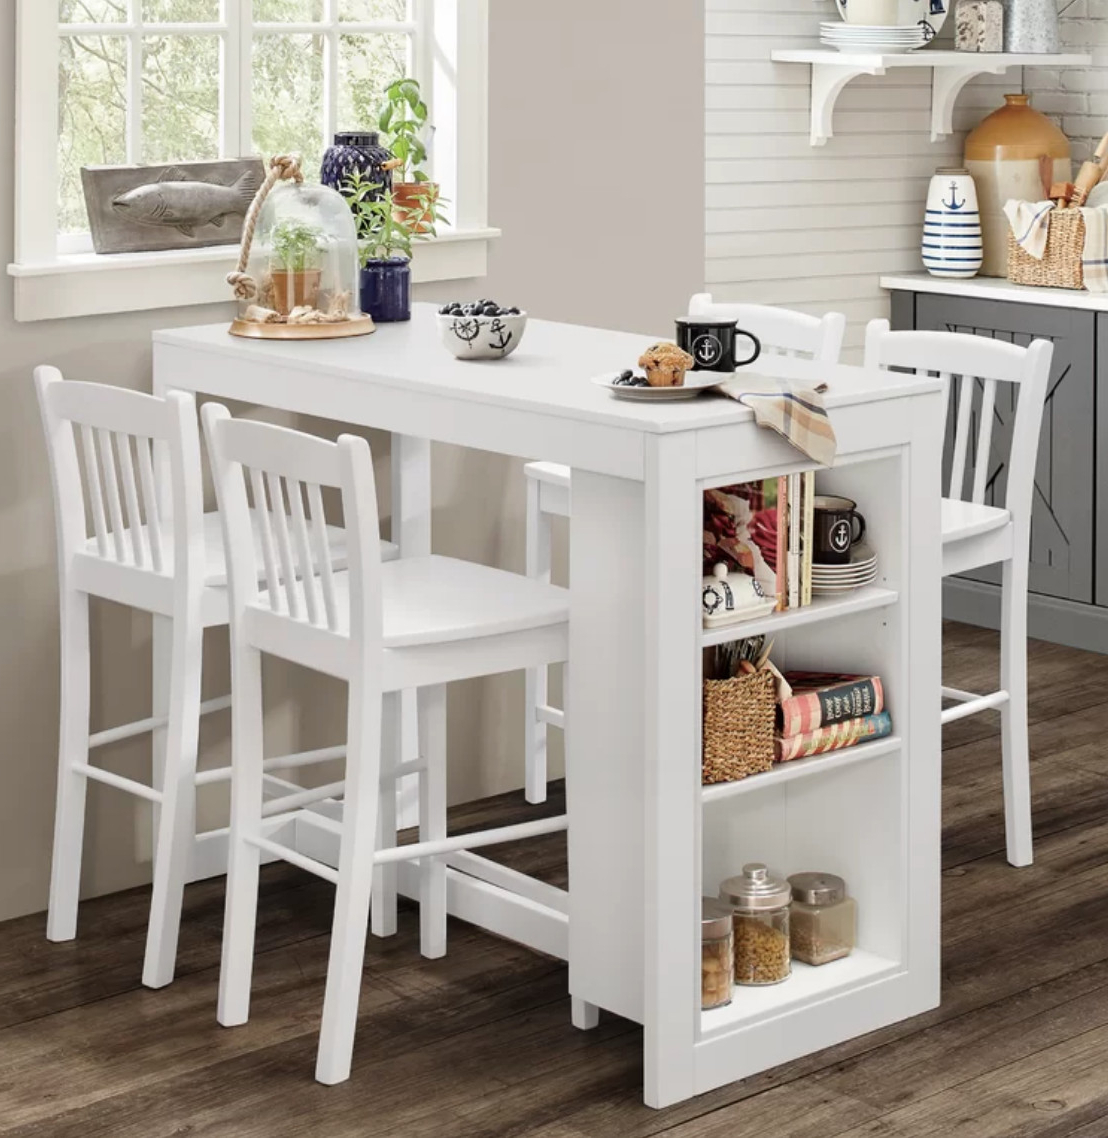 Dining Tables For Small Spaces – Small Spaces – Lonny In Preferred Taulbee 5 Piece Dining Sets (View 16 of 20)